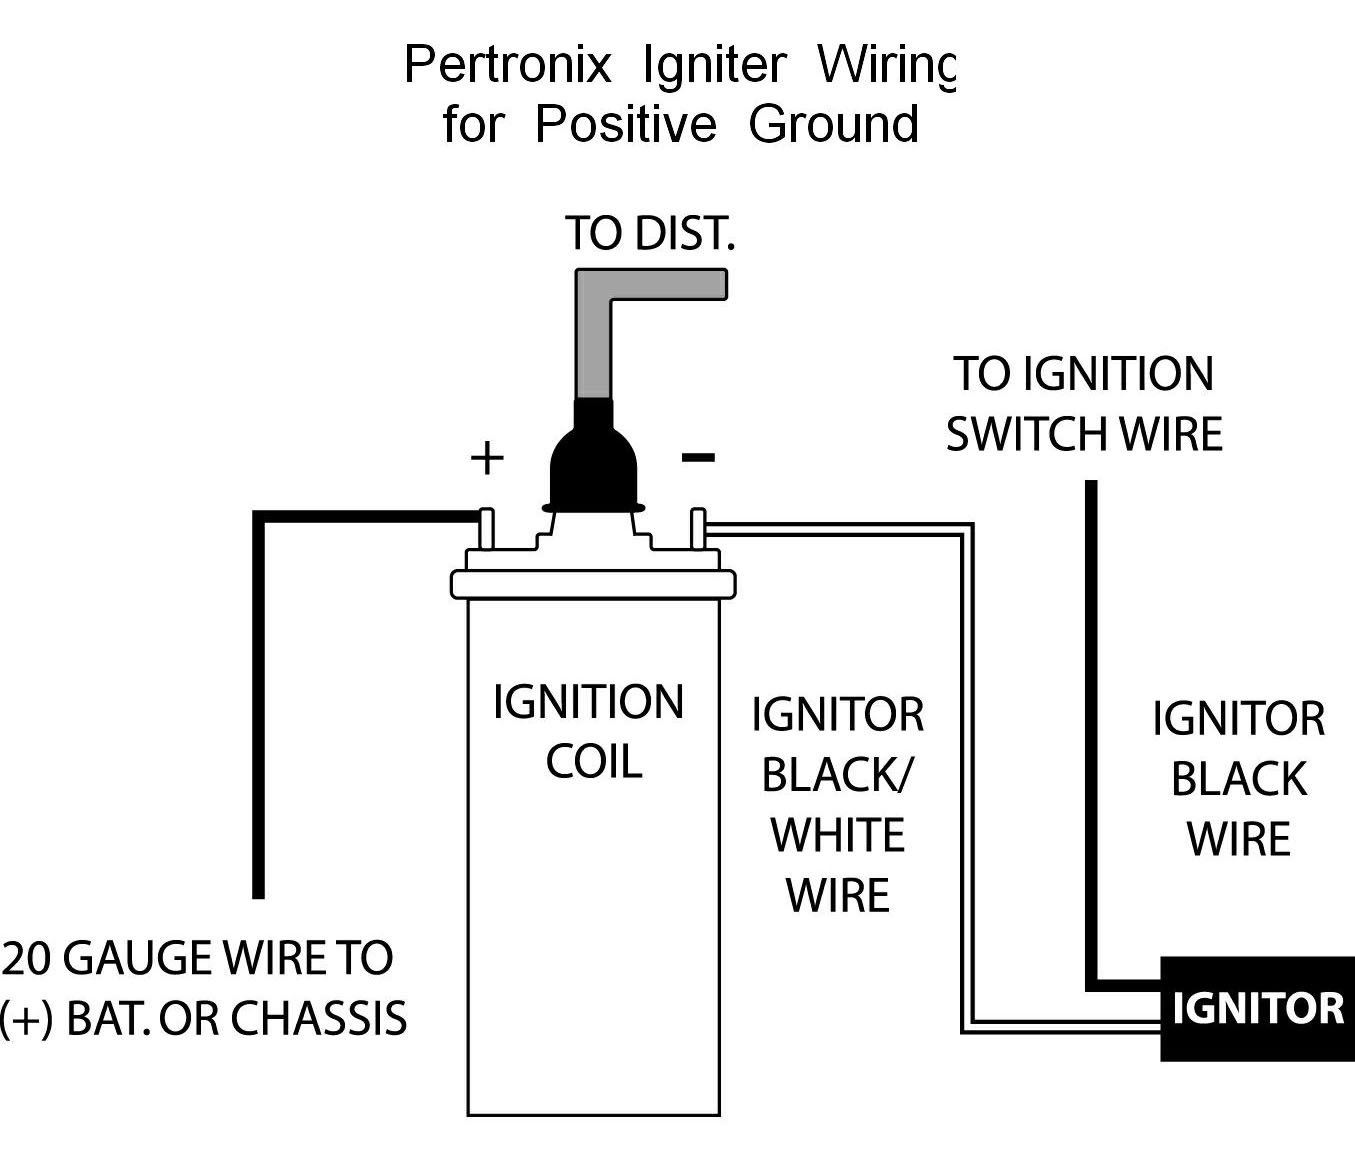 PerPosGndWiring pertronix wiring diagram mercedes electronic ignition wiring ballast resistor wiring diagram points at gsmportal.co